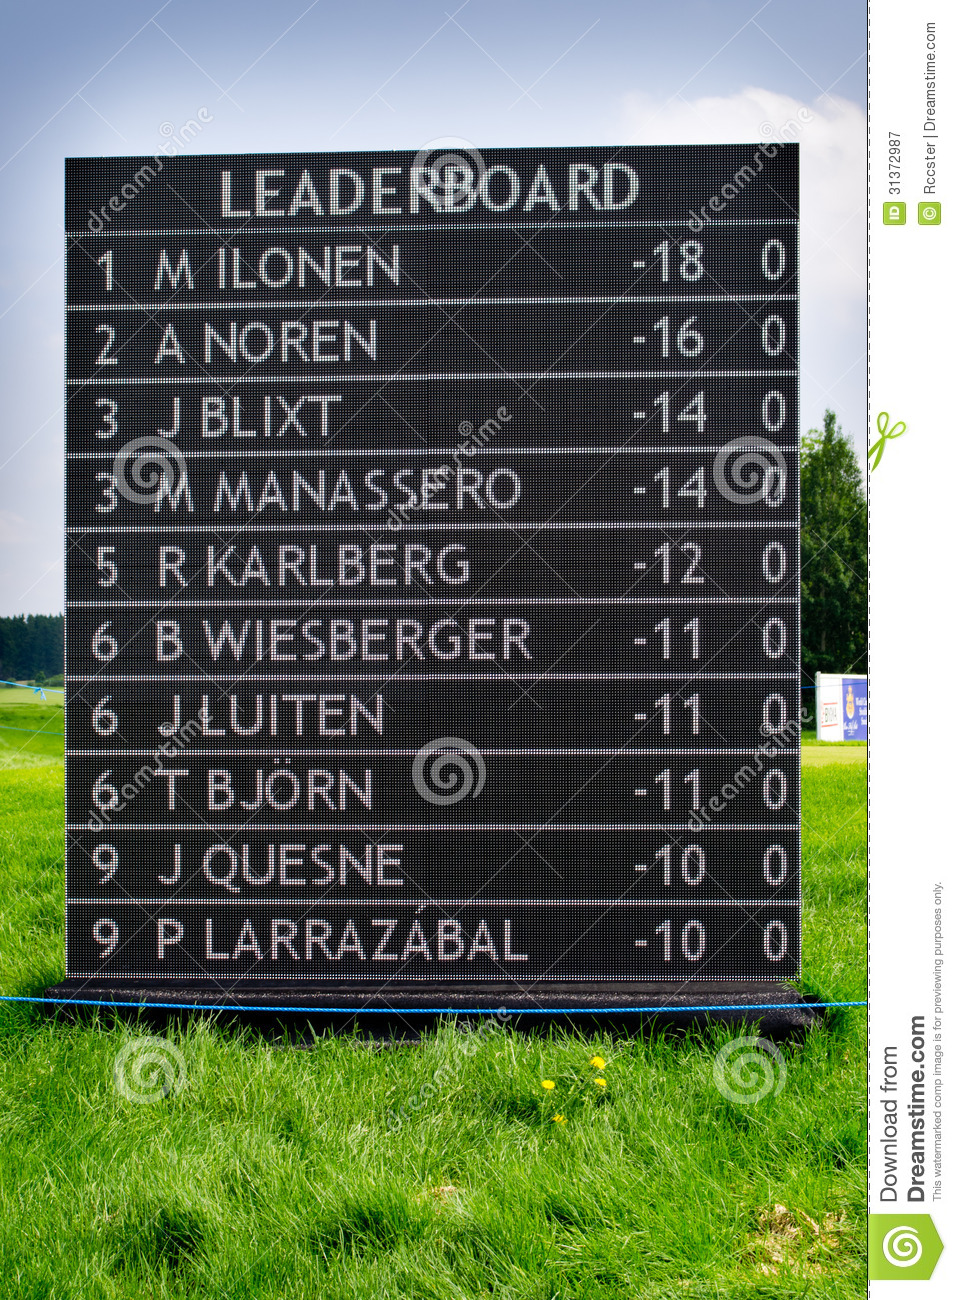 Pga Tour The Masters Leaderboard